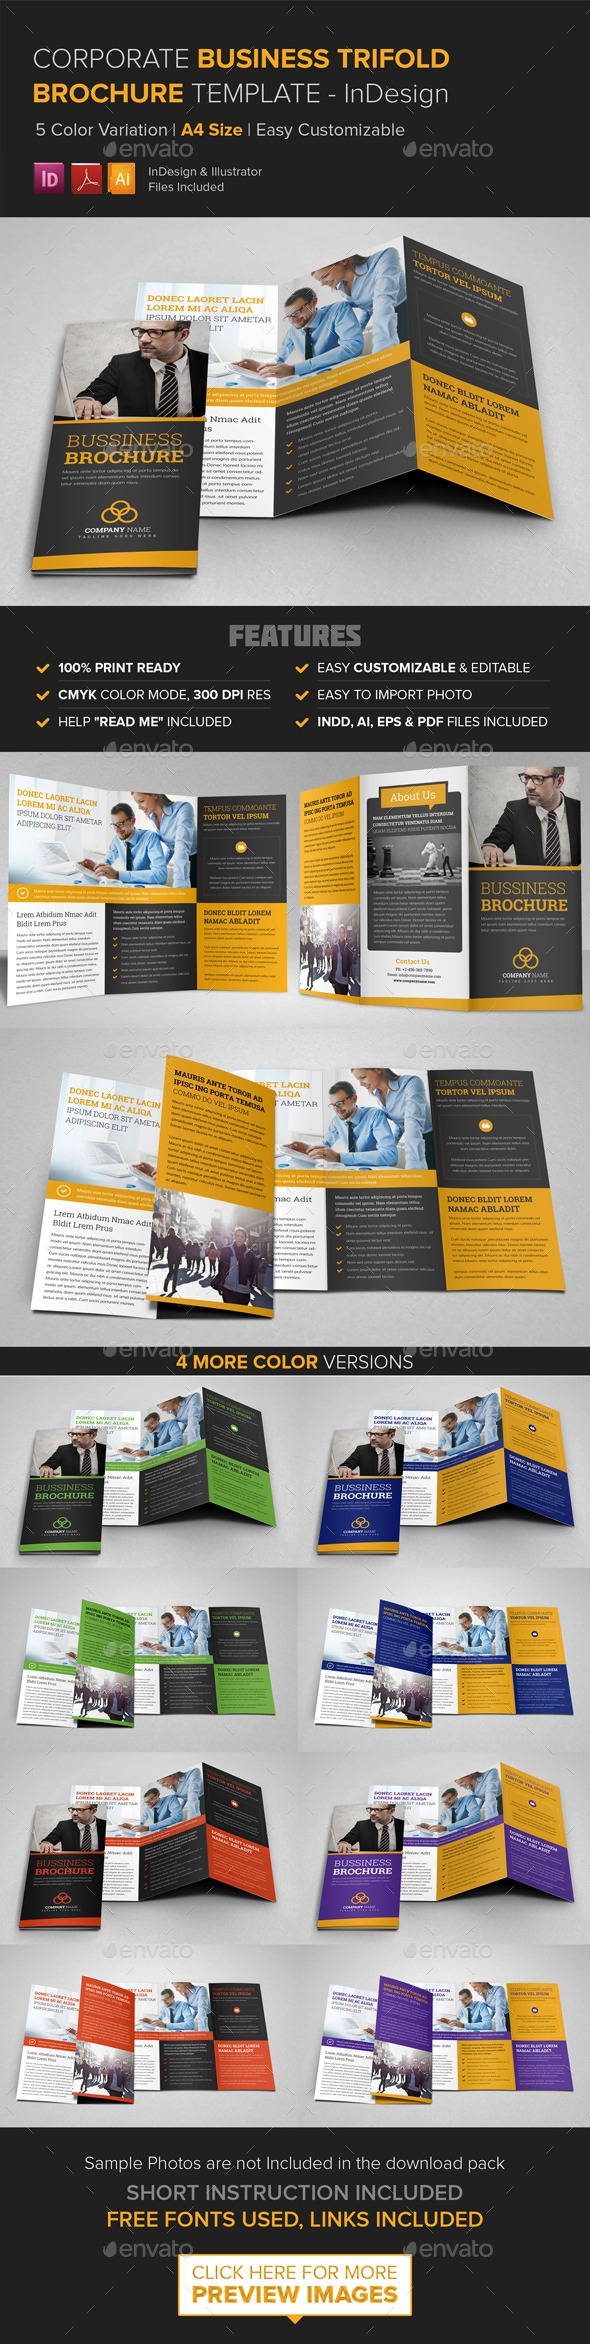 Corporate Business Trifold Brochure - InDesign - Corporate Brochures